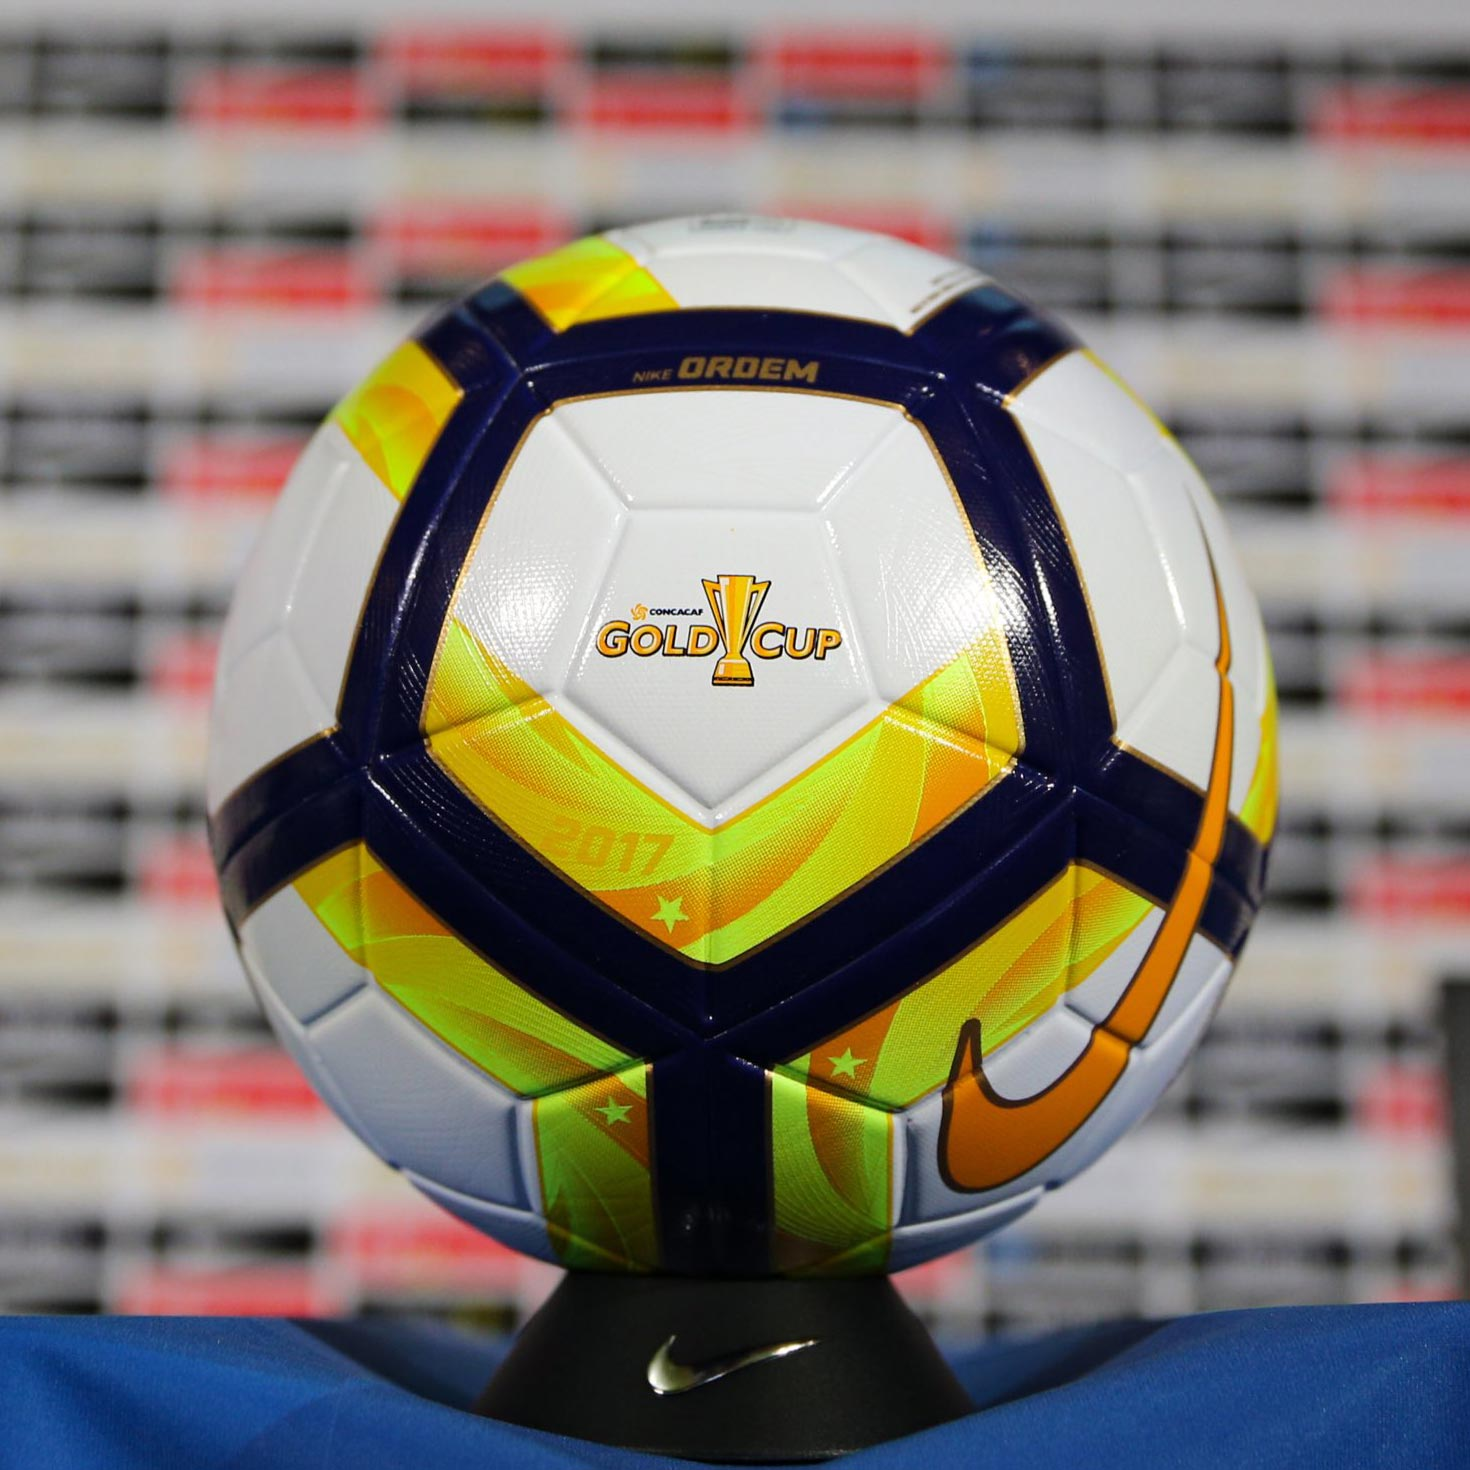 Nike Ordem 2017 Gold Cup Ball Revealed - Footy Headlines